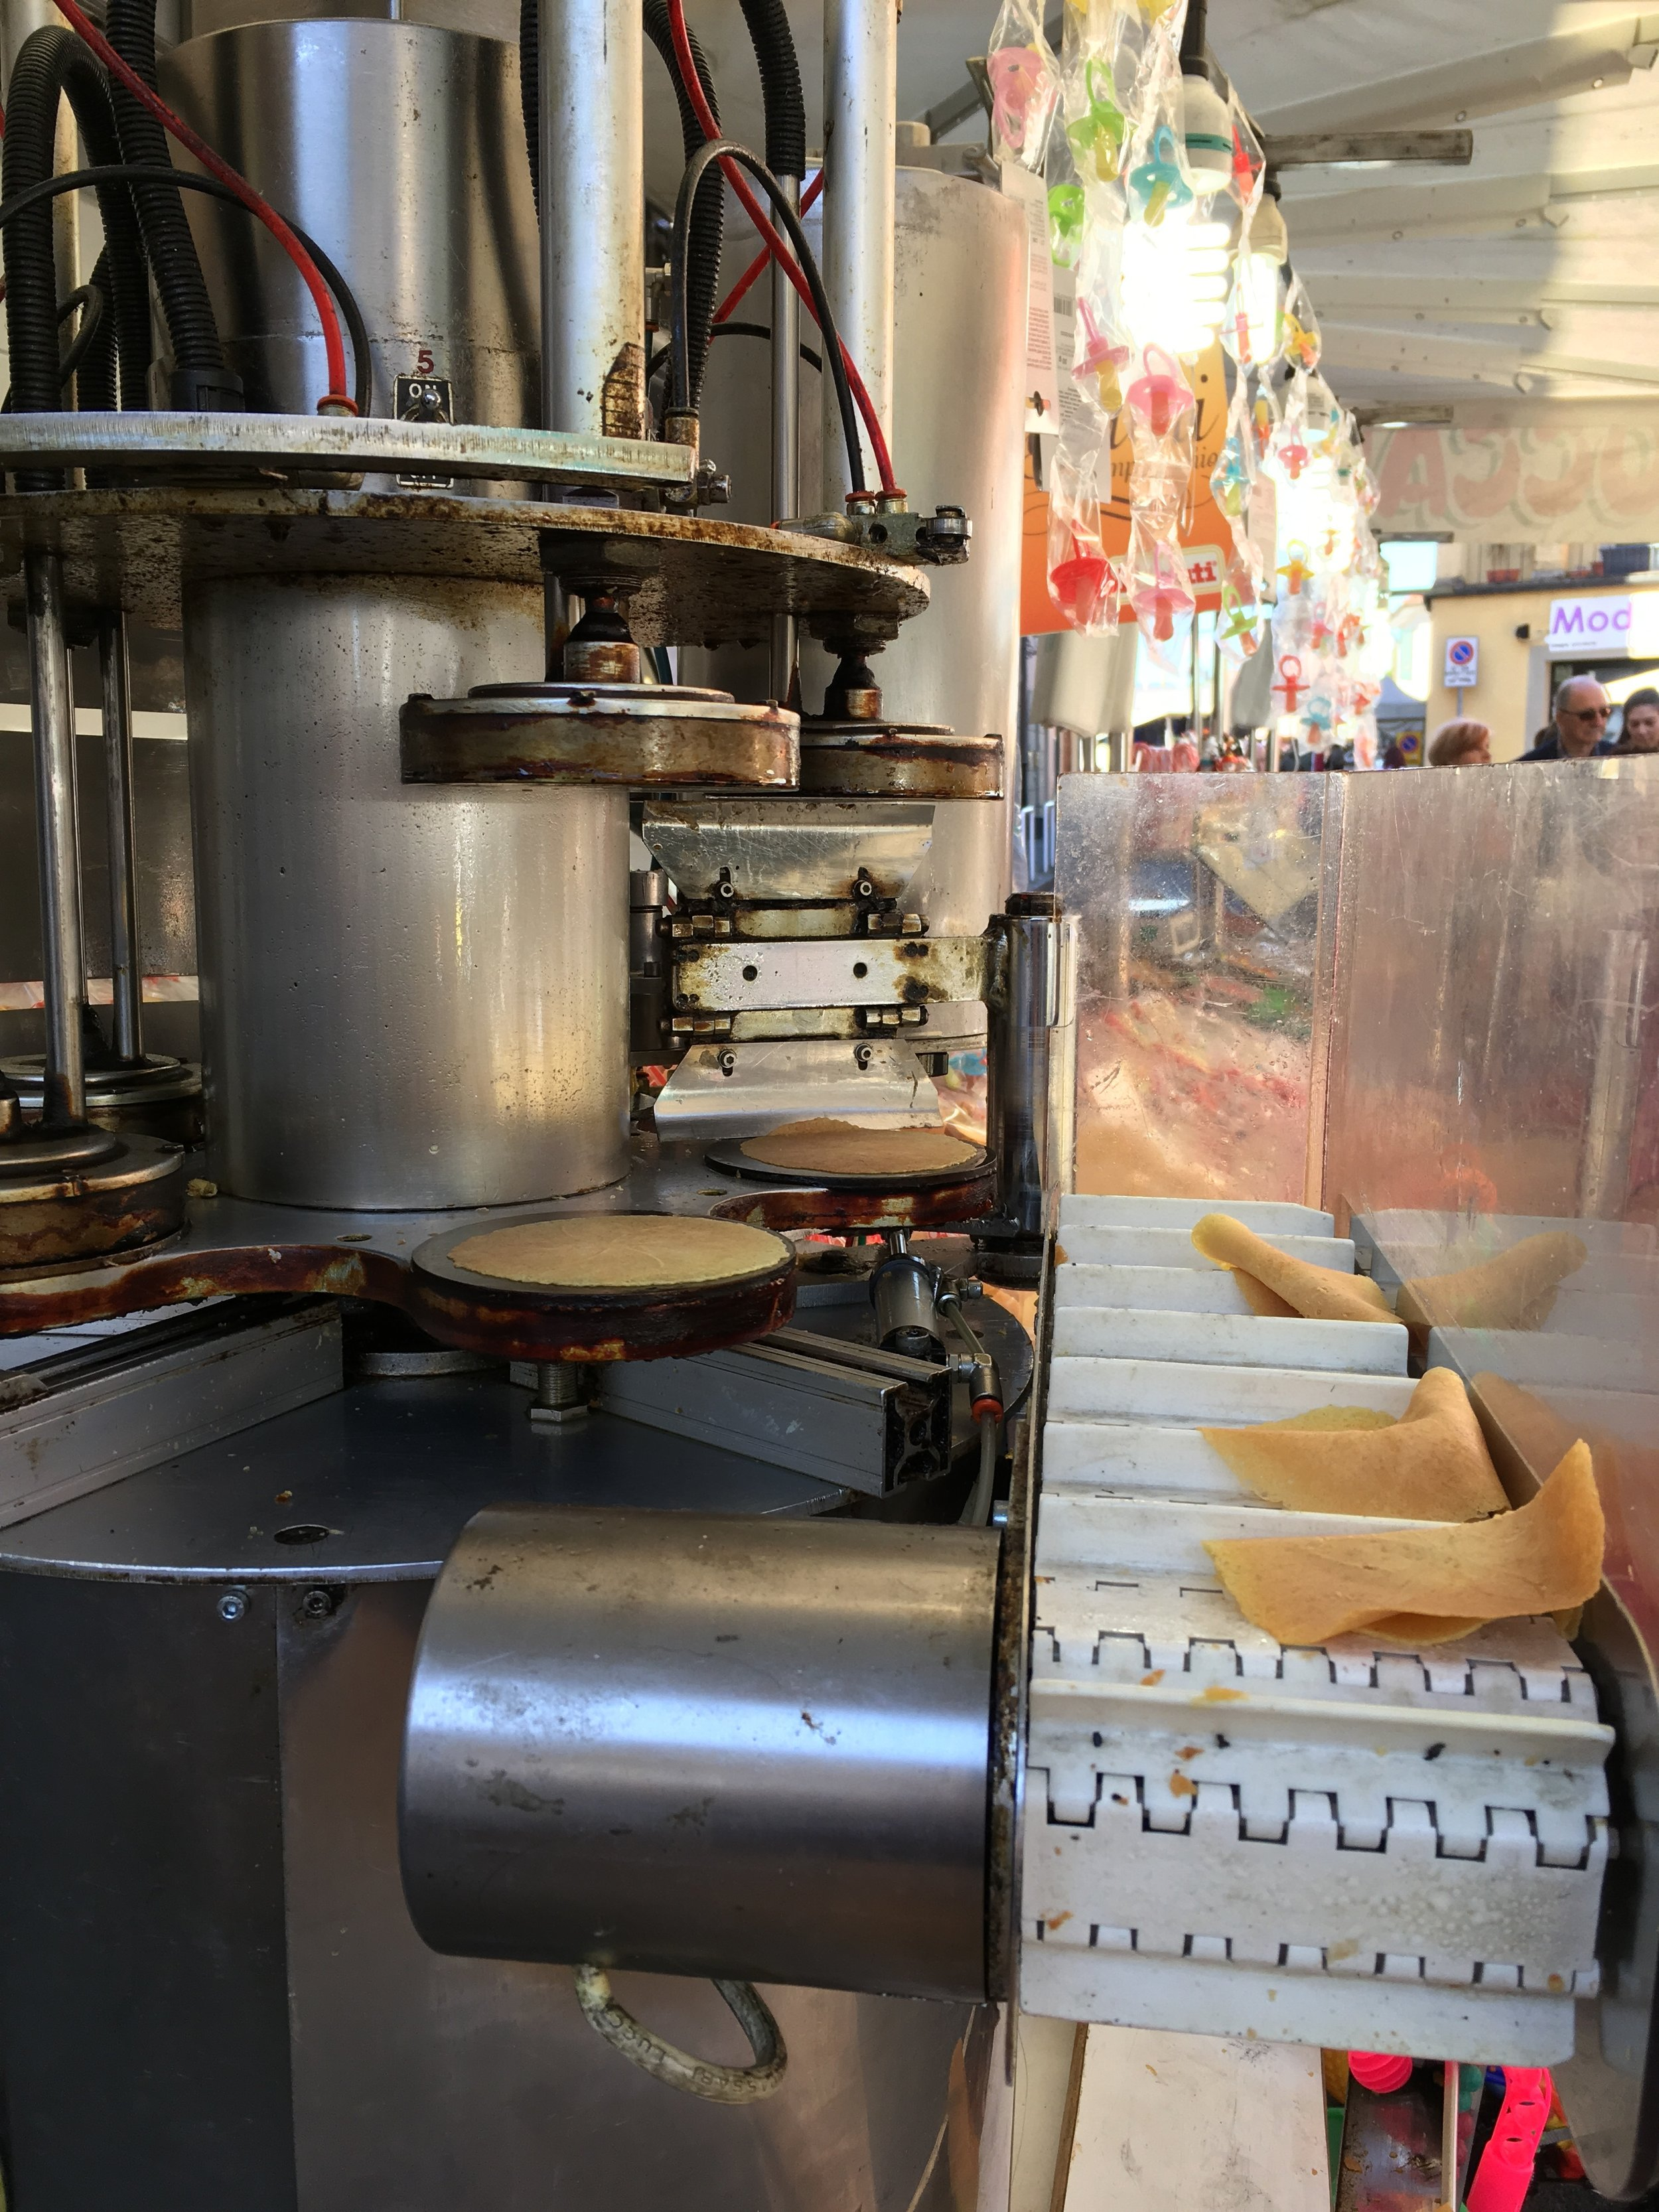 The wafers are cooked individually on the small griddles of the machine. This one rotates and drops them onto the conveyor belt for packaging.I think they are best hot off the griddle!